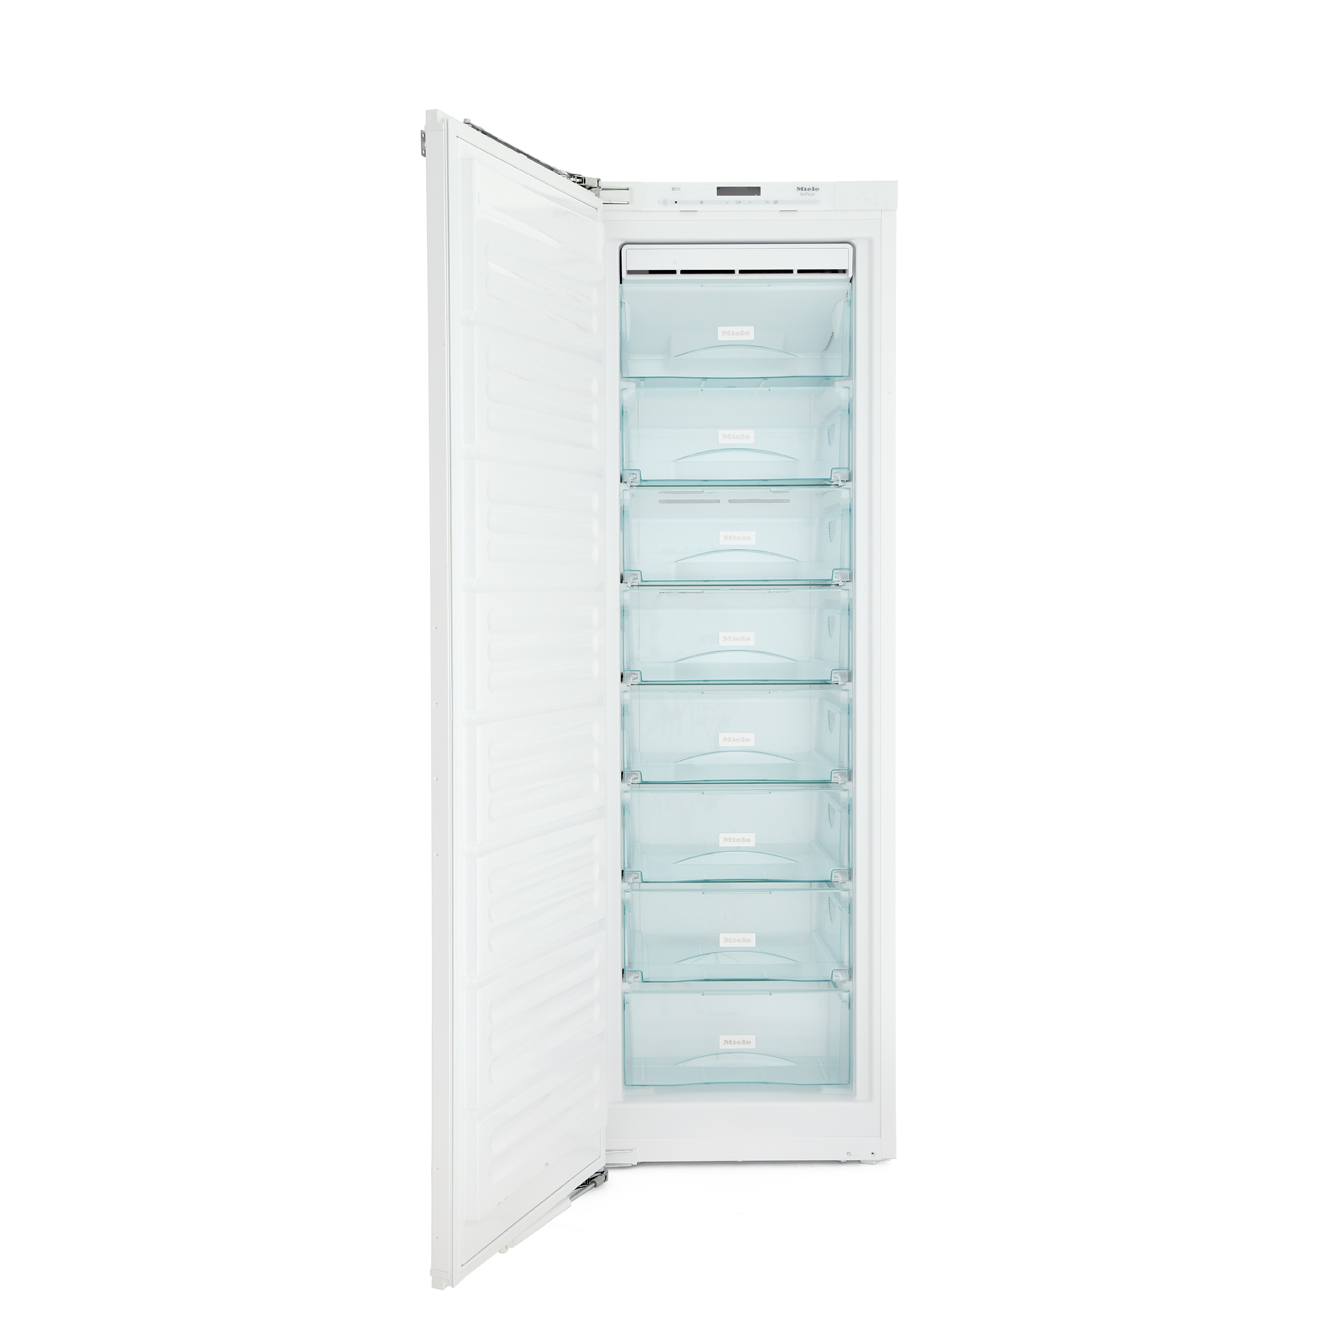 Miele FNS37402i Frost Free Built In Freezer